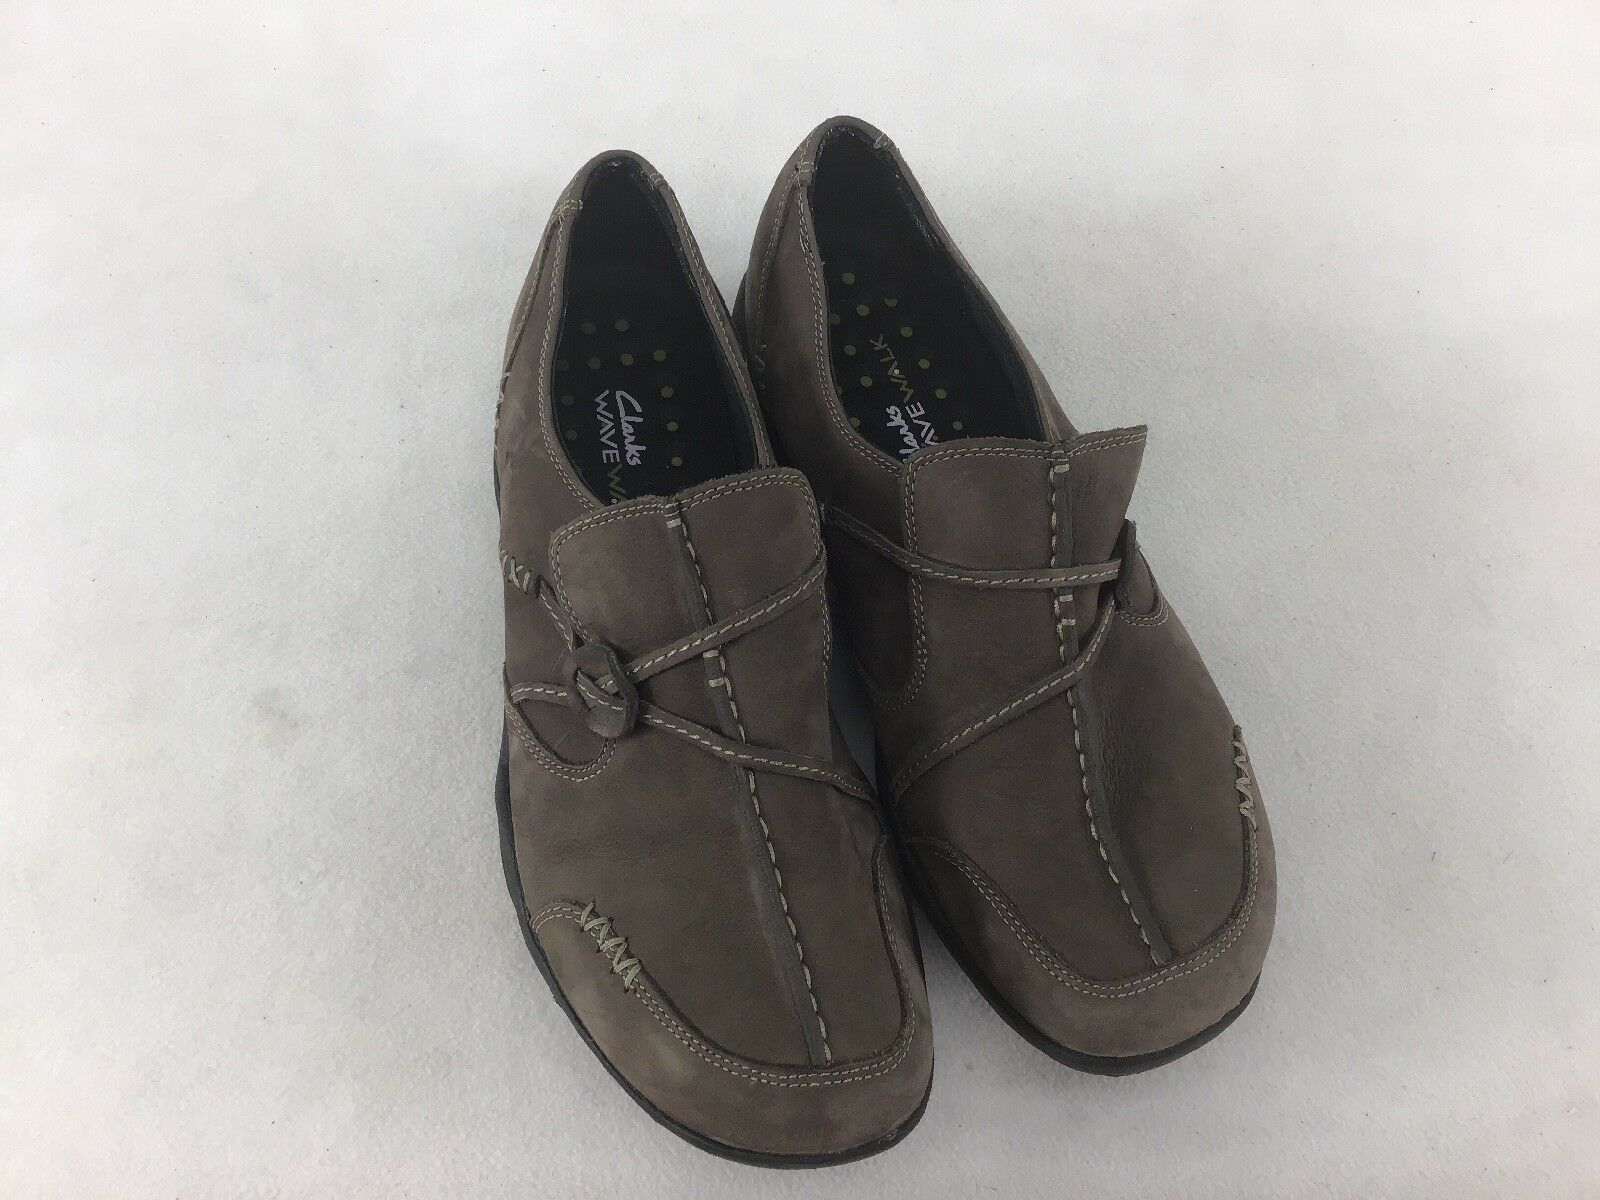 info for 401b9 1734c Clarks Wave Walk Leather Walking Size F6367 LS 8.5M shoes nrocdg7948-Women s  Trainers